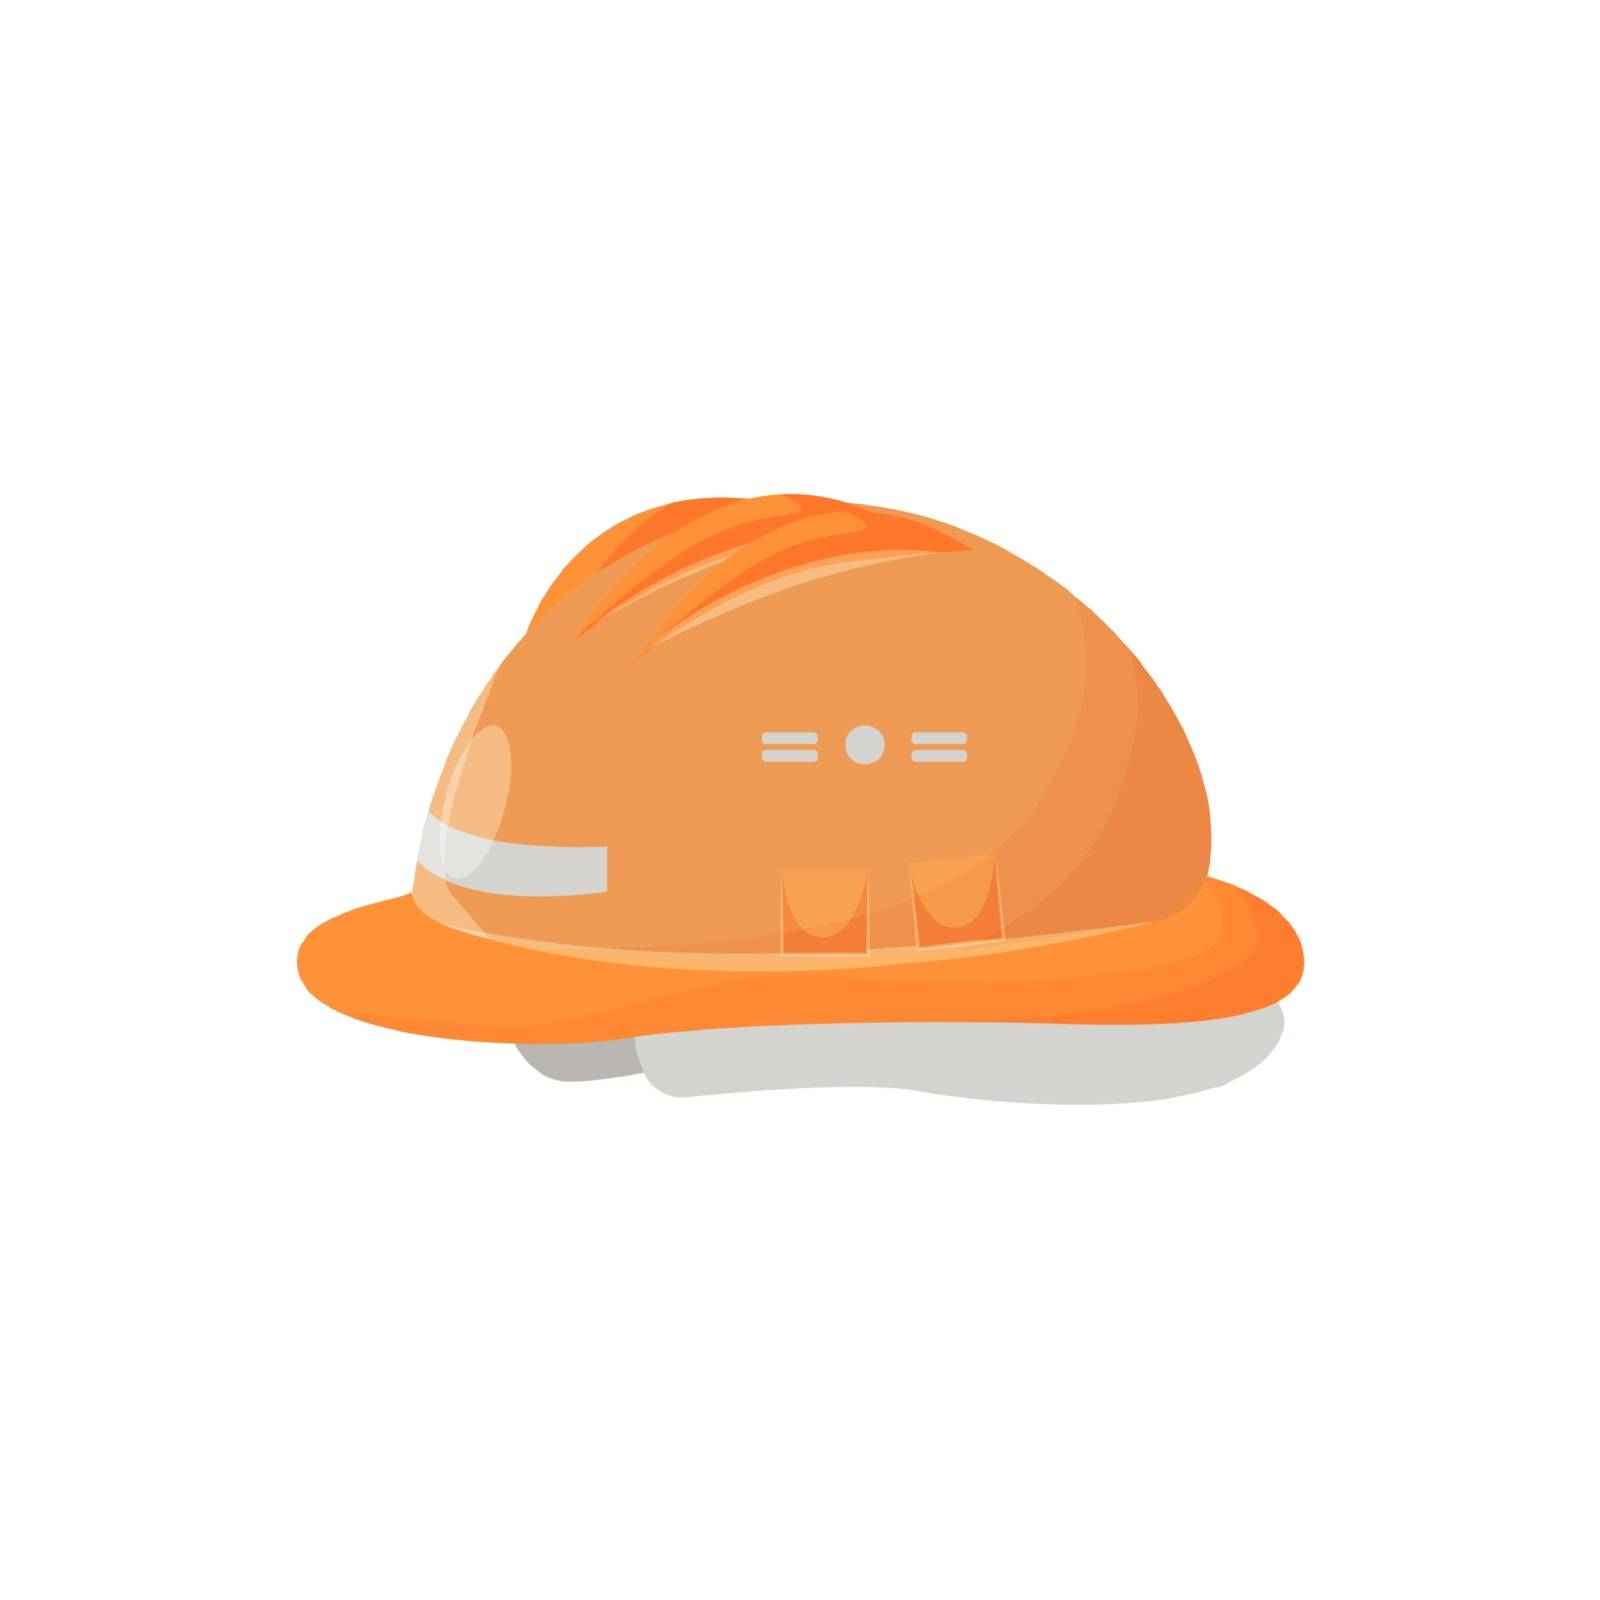 Hardhat cartoon vector illustration. Personal protective equipment, head wear. Industrial accessory, builder uniform item. Construction accident prevention. Safety helmet isolated on white background